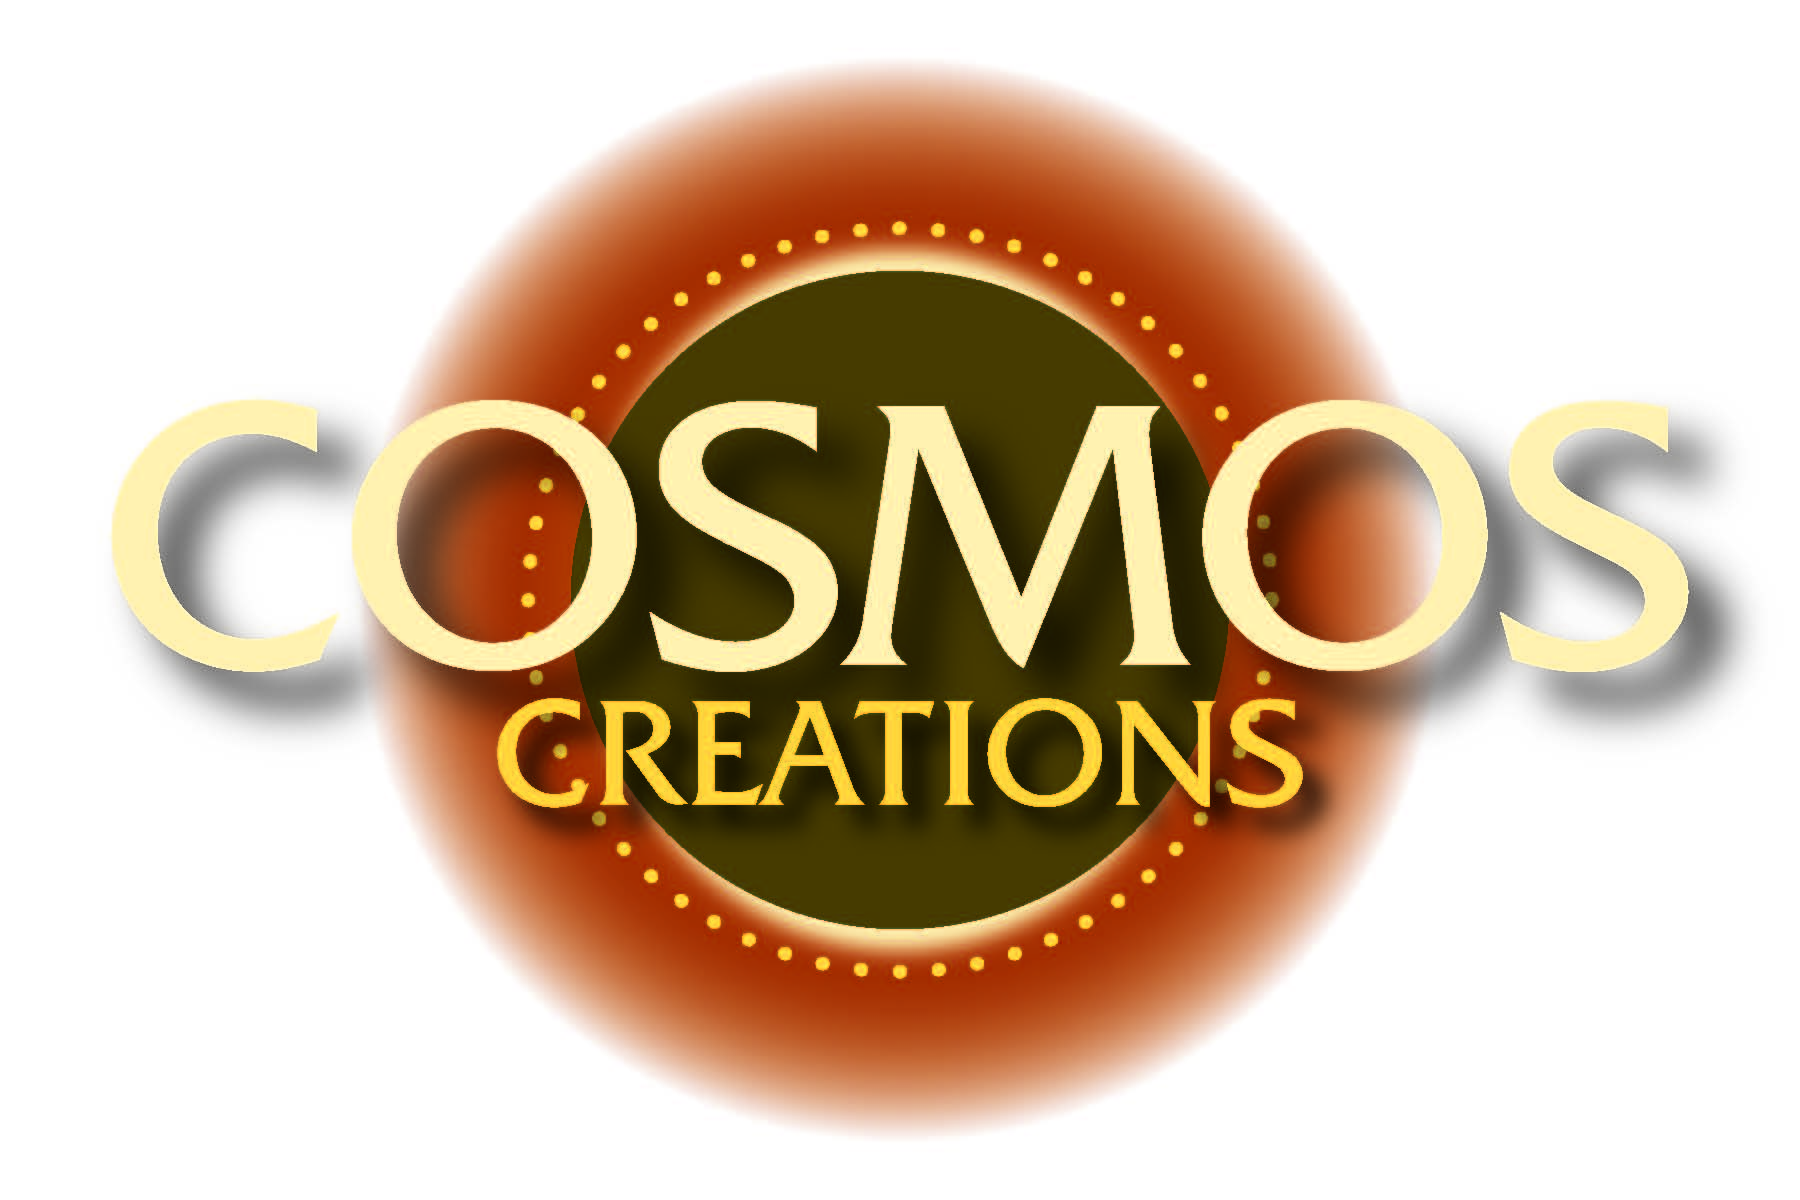 cosmic creations Xfru, please note that in order to be able to post new threads in this section you must have an account with at least 20 posts and at least 1 week of age.